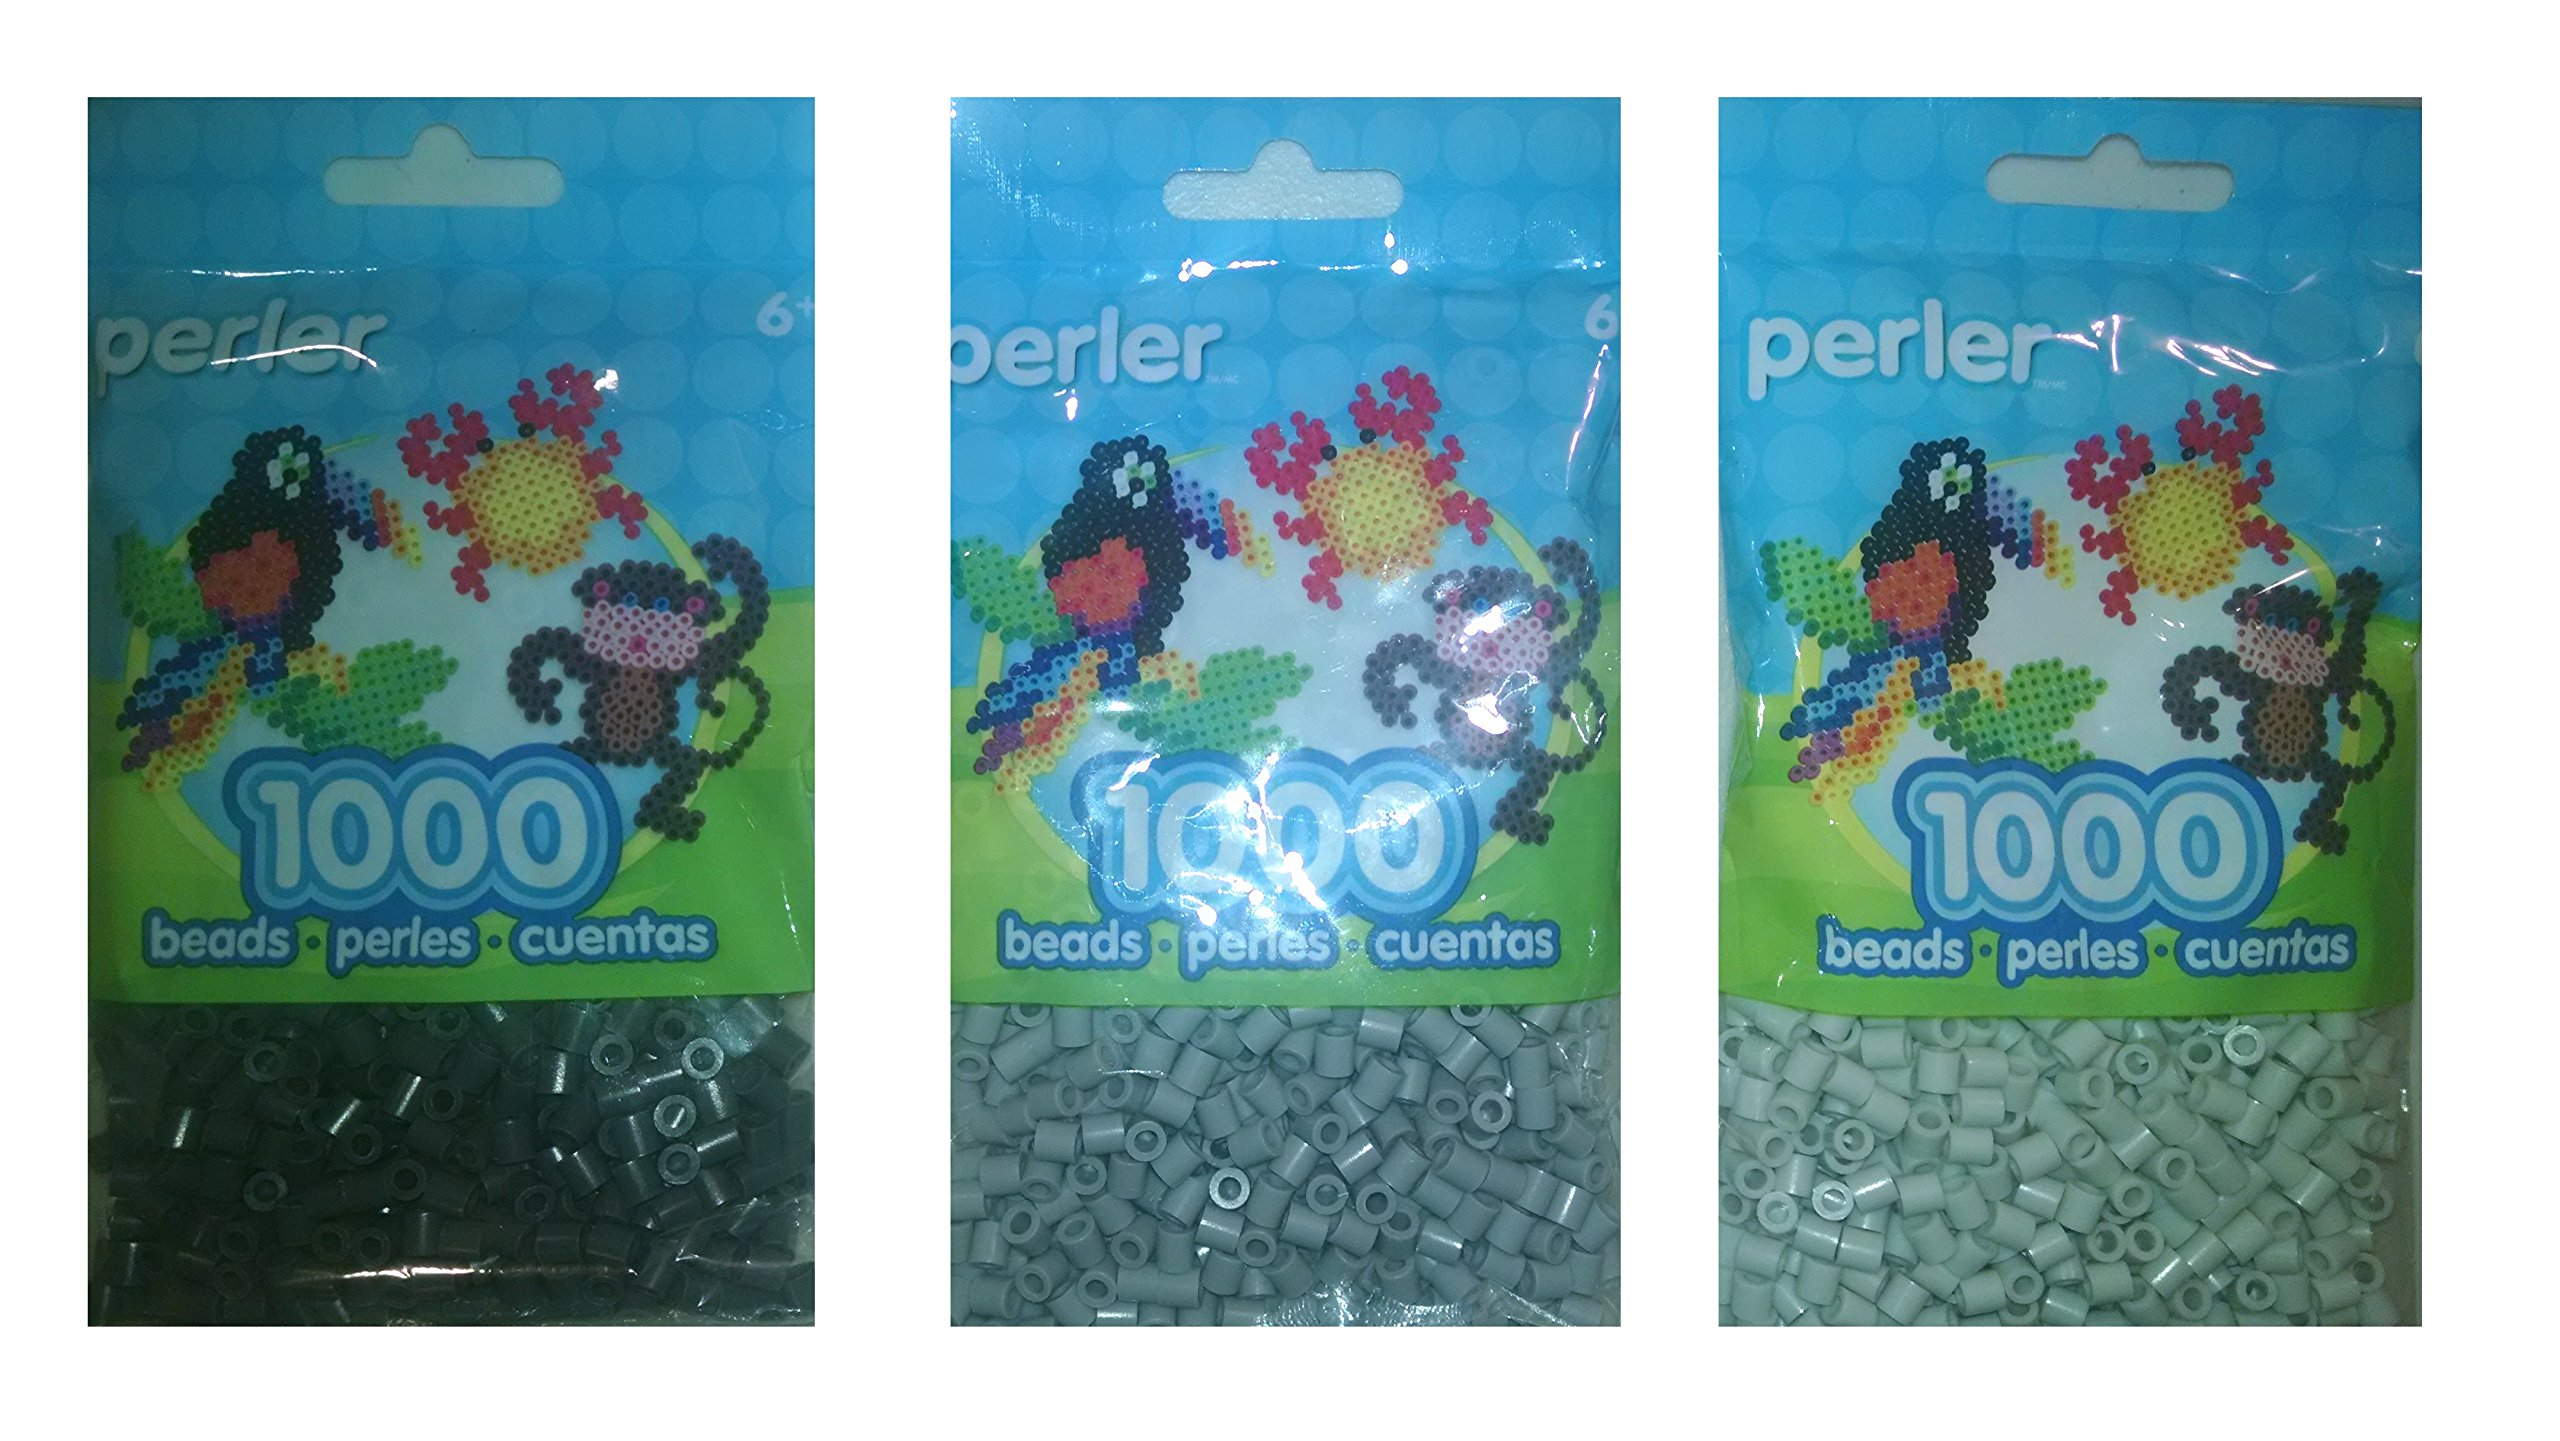 Perler Bead Bag, Grey Group (Grey, Dark Grey, Light Grey) by Perler (Image #1)